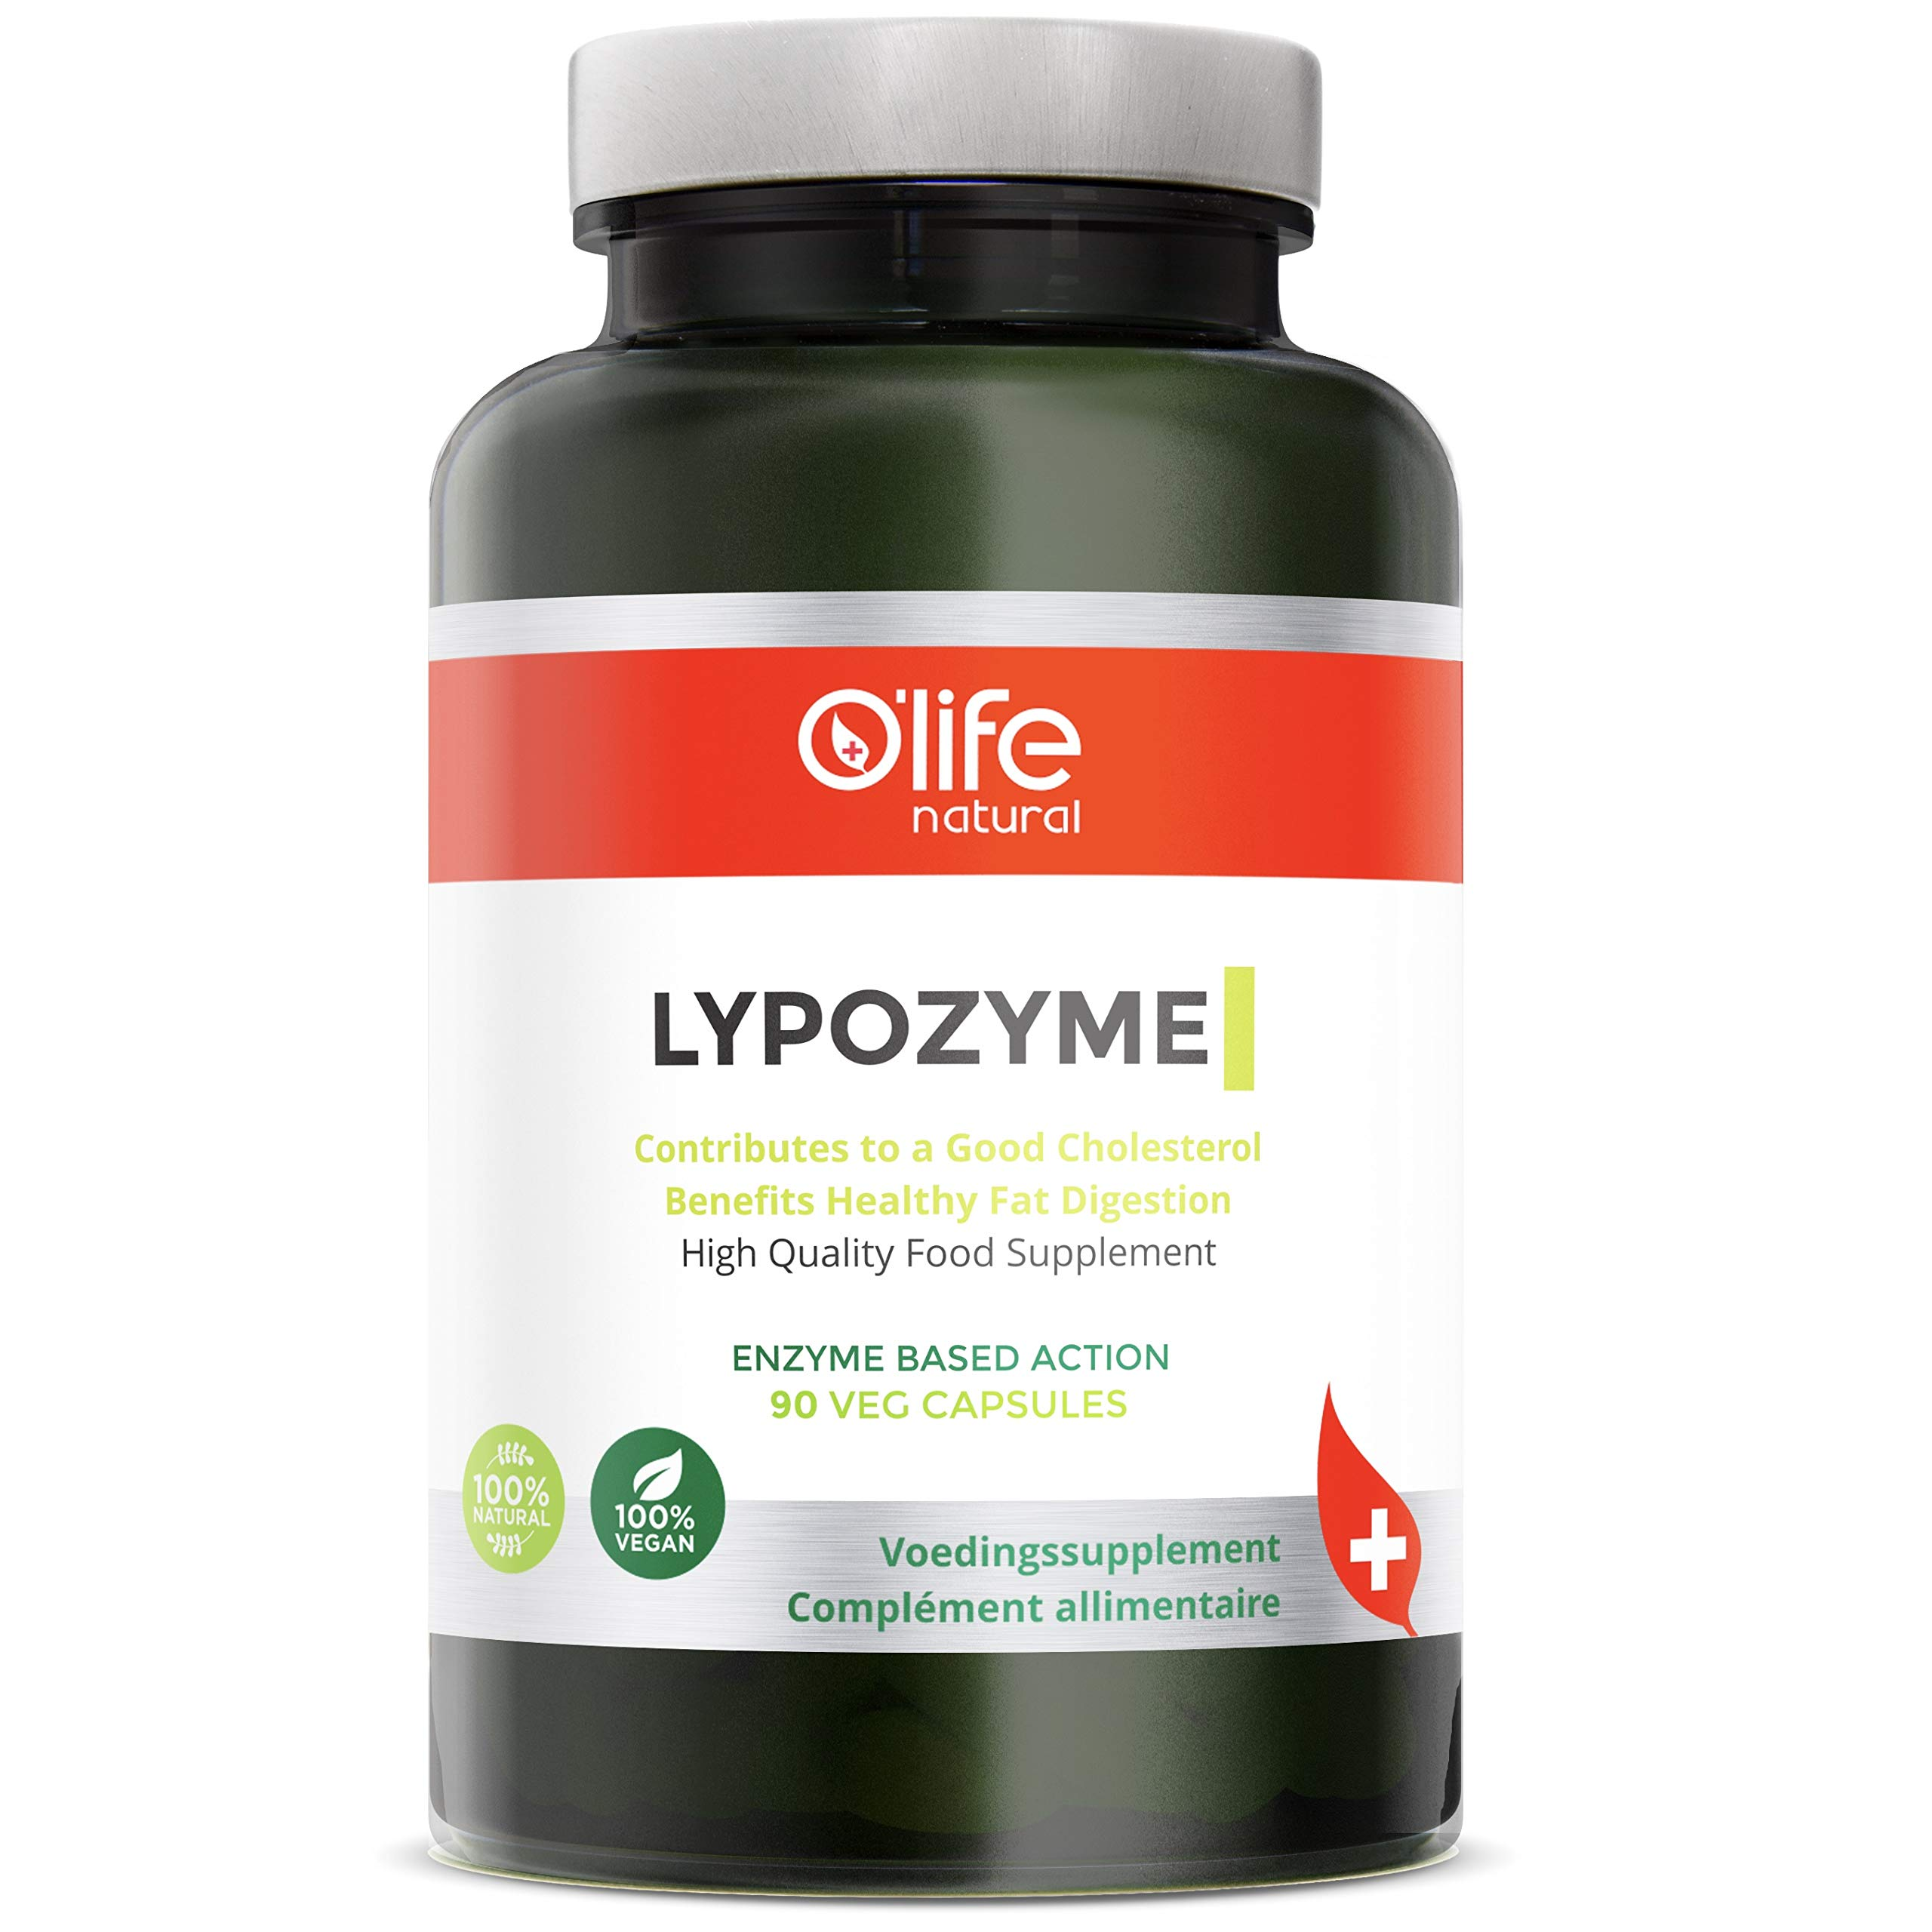 O'Life Natural's LYPOZYME - Advanced Lipase Enzyme Formula - Daily Cholesterol Lowering Support Supplement - Promote Carbs & Fats Digestion - 90 Veg Capsules by O'life Natural